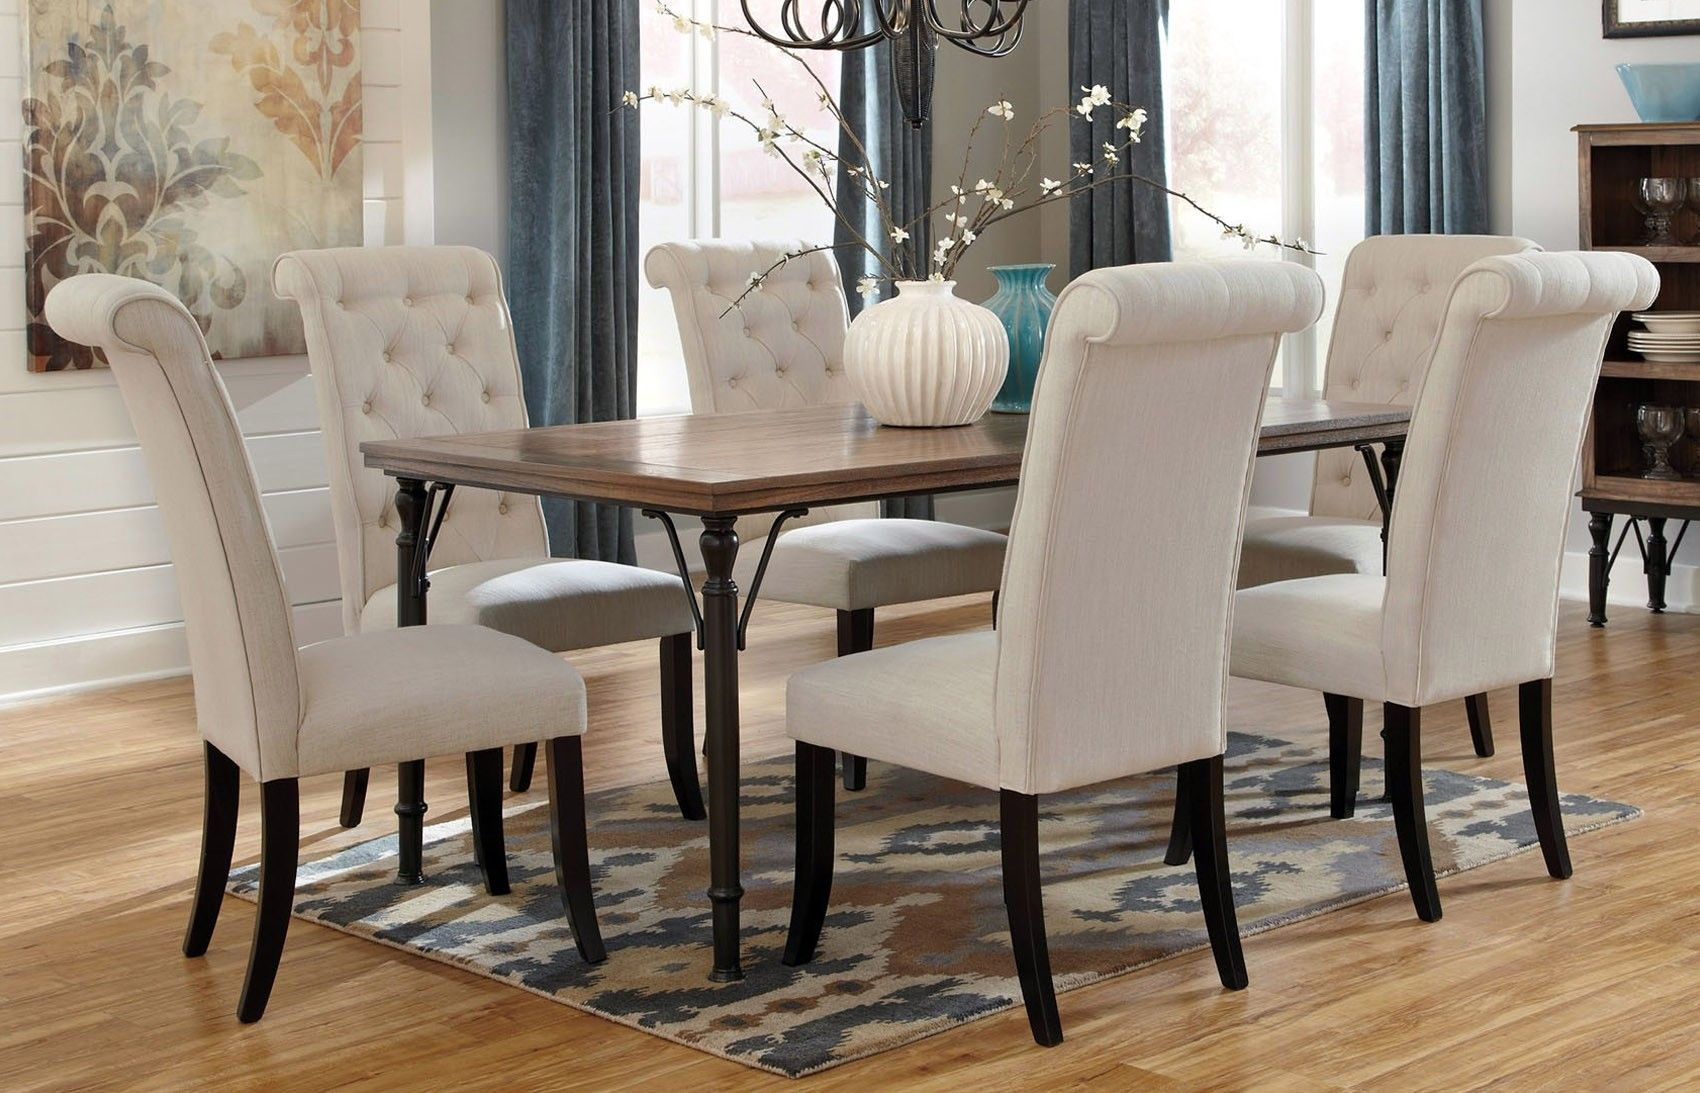 Tripton 5 Pc Dining Table by Ashley Furniture (Rustic Artisan Collection) & Tripton 5 Pc Dining Table by Ashley Furniture (Rustic Artisan ...